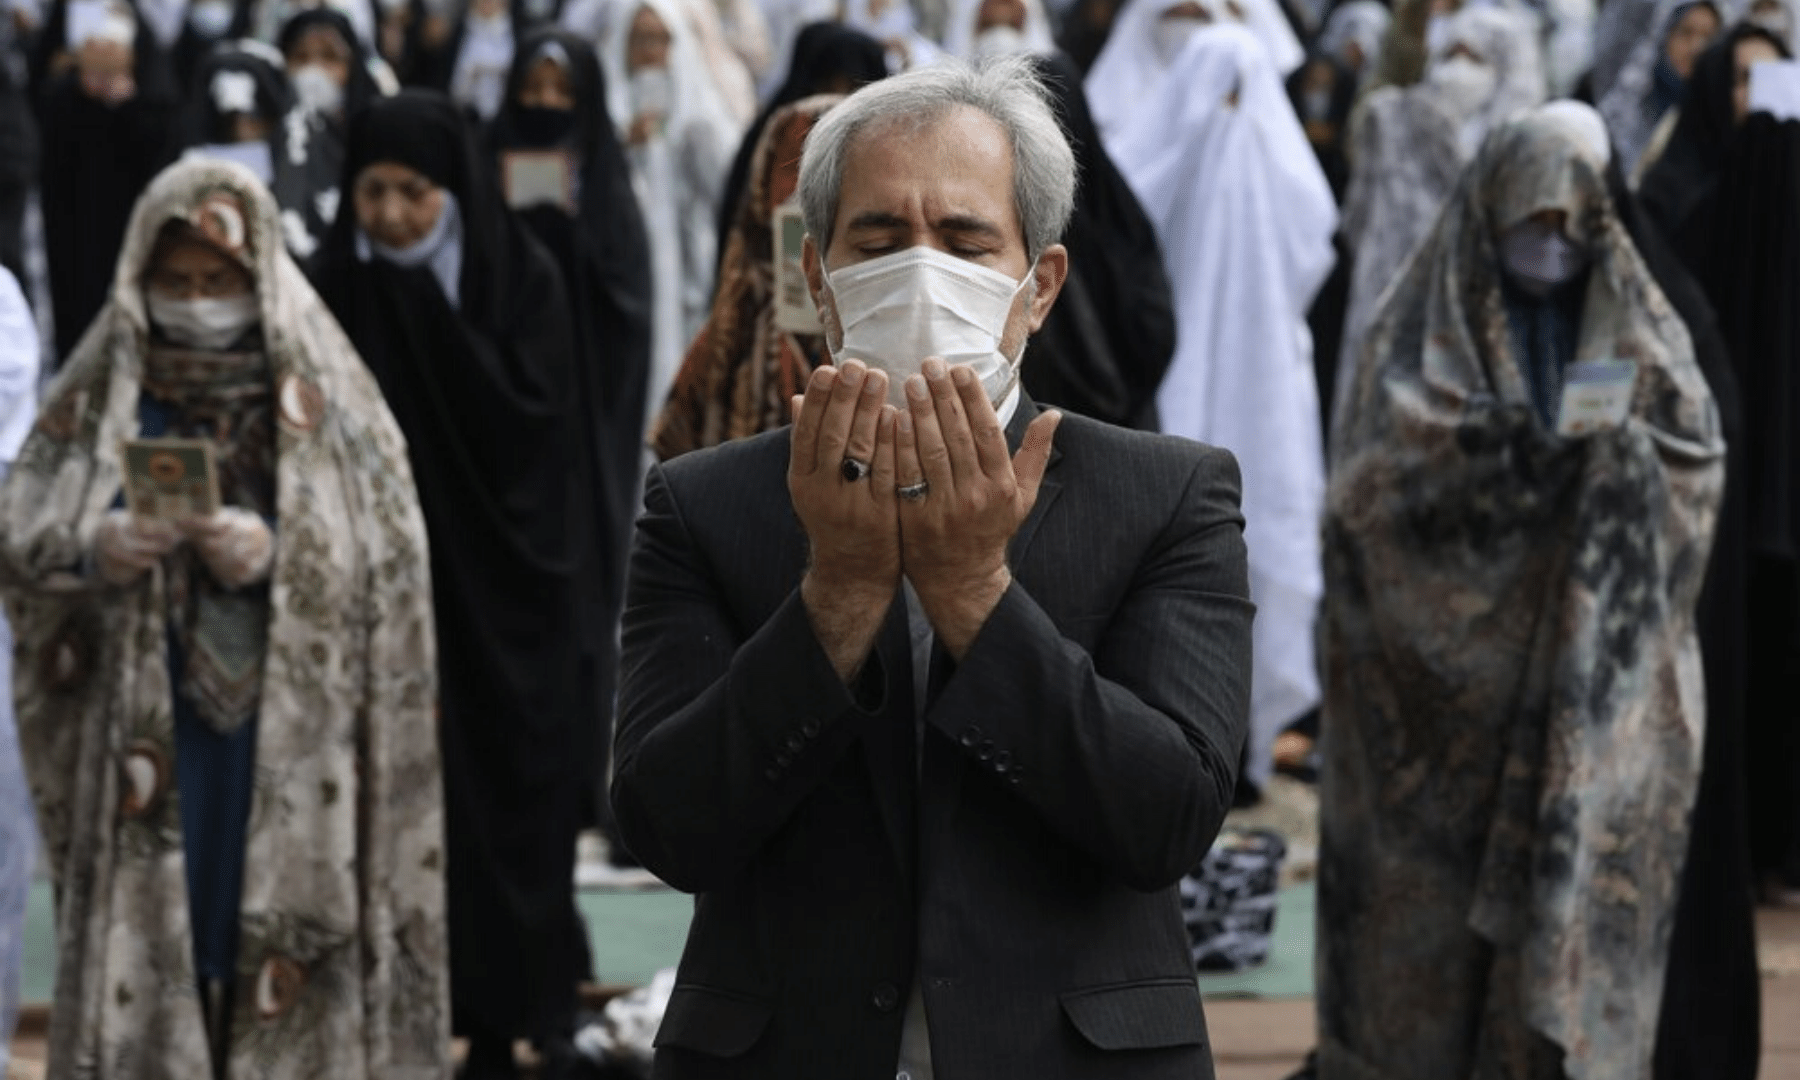 Worshippers wearing protective face masks offer Eidul Fitr prayers outside a mosque to help prevent the spread of the coronavirus, in Tehran, Iran. Authorities have imposed few restrictions ahead of the holiday aside from cancelling mass prayers in the capital. — AP